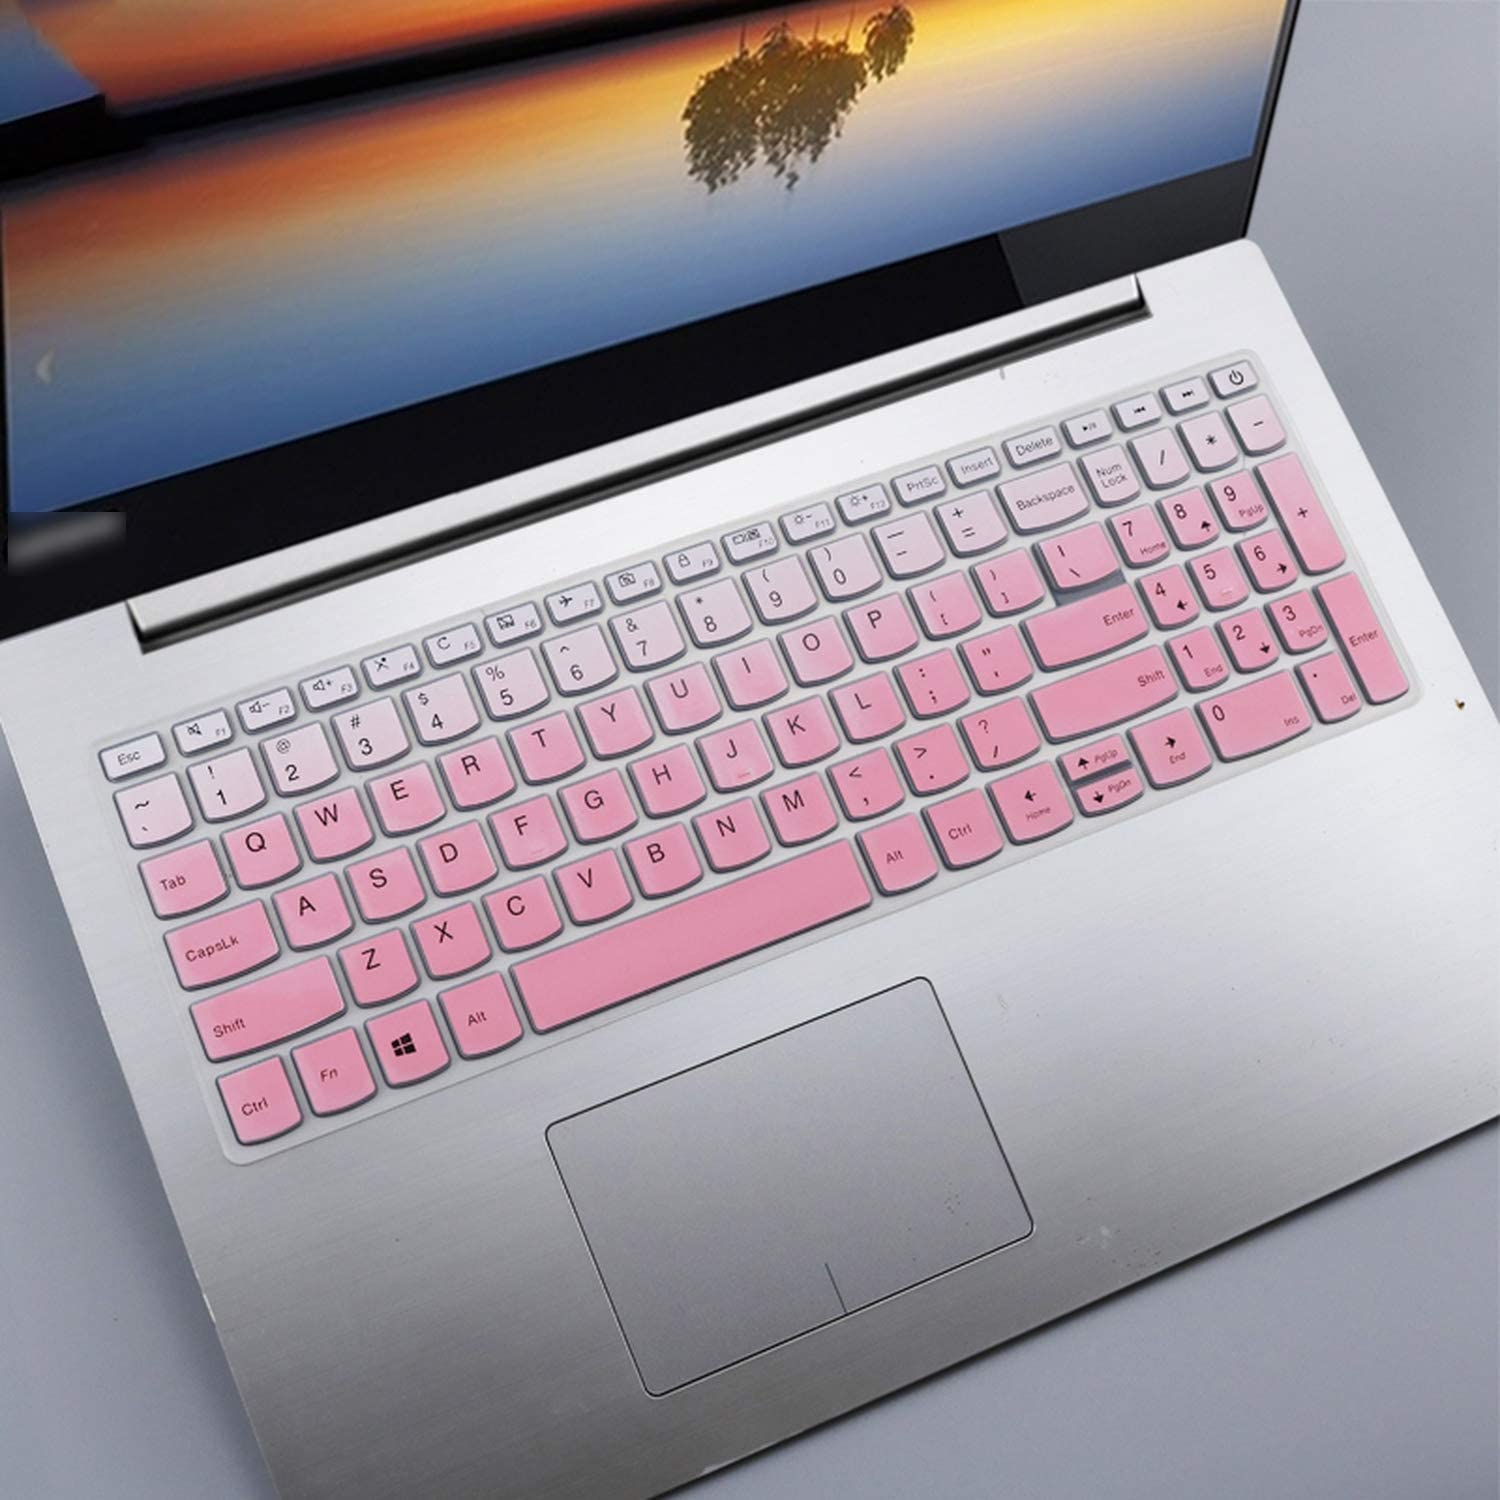 All-Equal for Lenovo Ideapad 330 320 320 17 330 17 17.3 Hd I5 8250U 17 Inch Laptop Notebook Keyboard Cover Skin-Fadepink